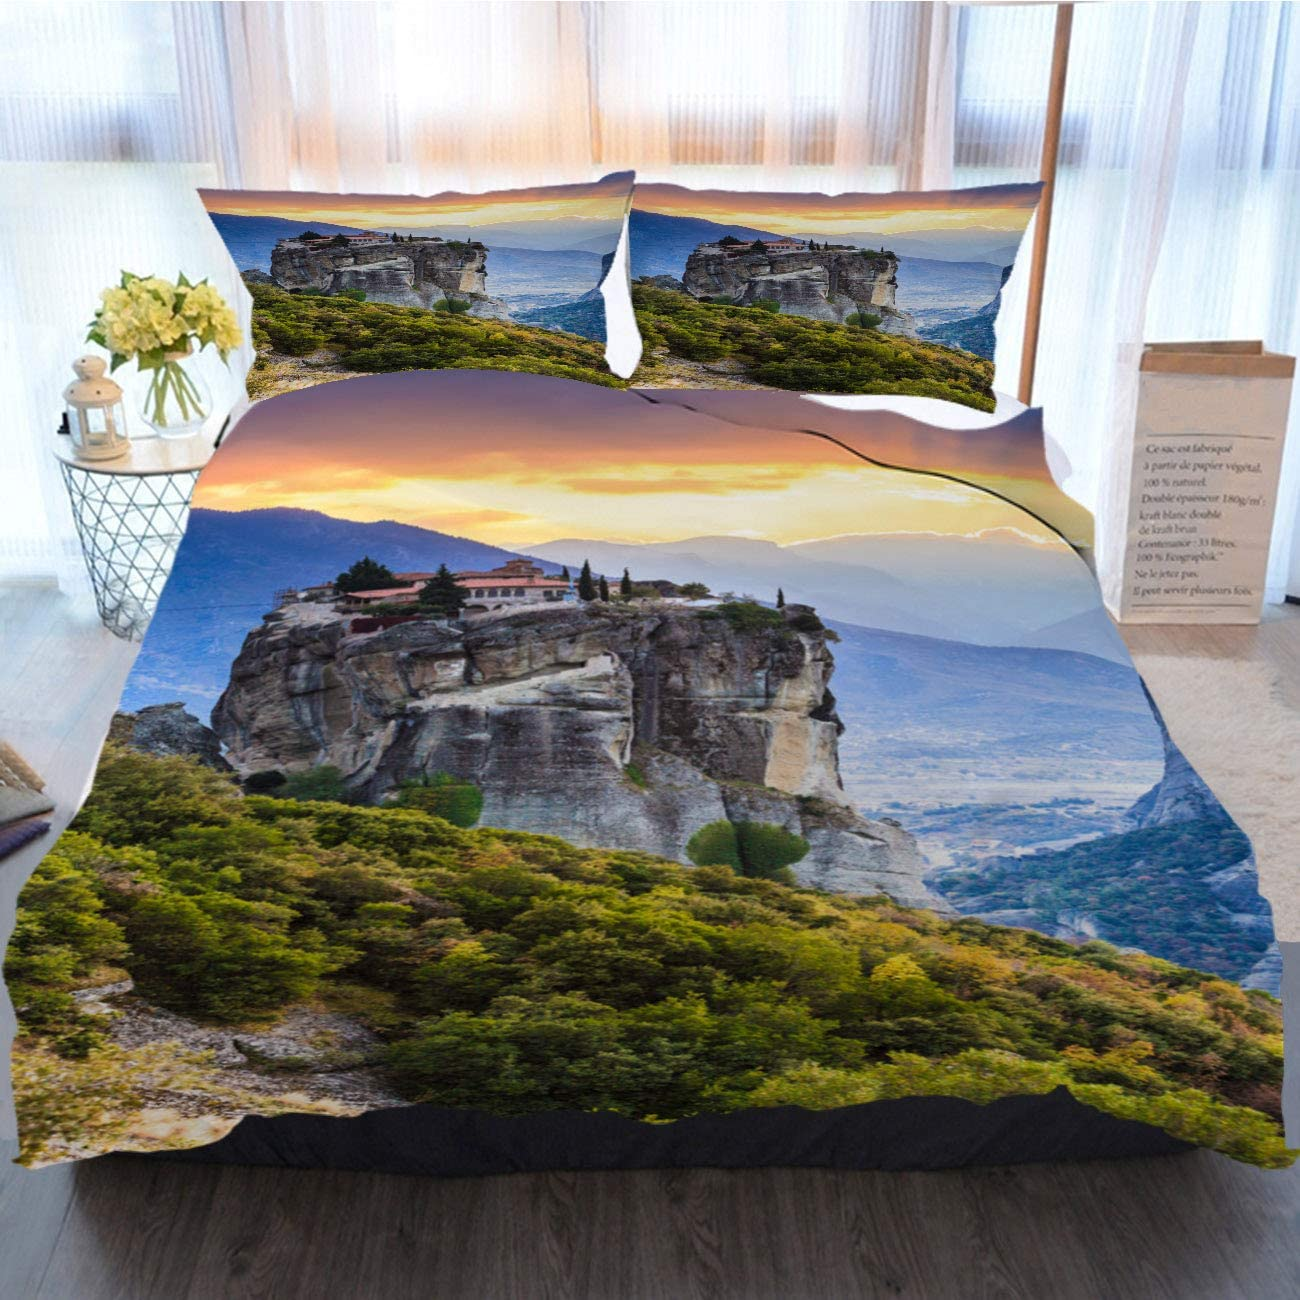 Christmas Bedding 3 Piece Duvet Cover Sets Monastery of The Holy I in Meteora Greece Home Luxury Soft Duvet Comforter Cover,Gal King